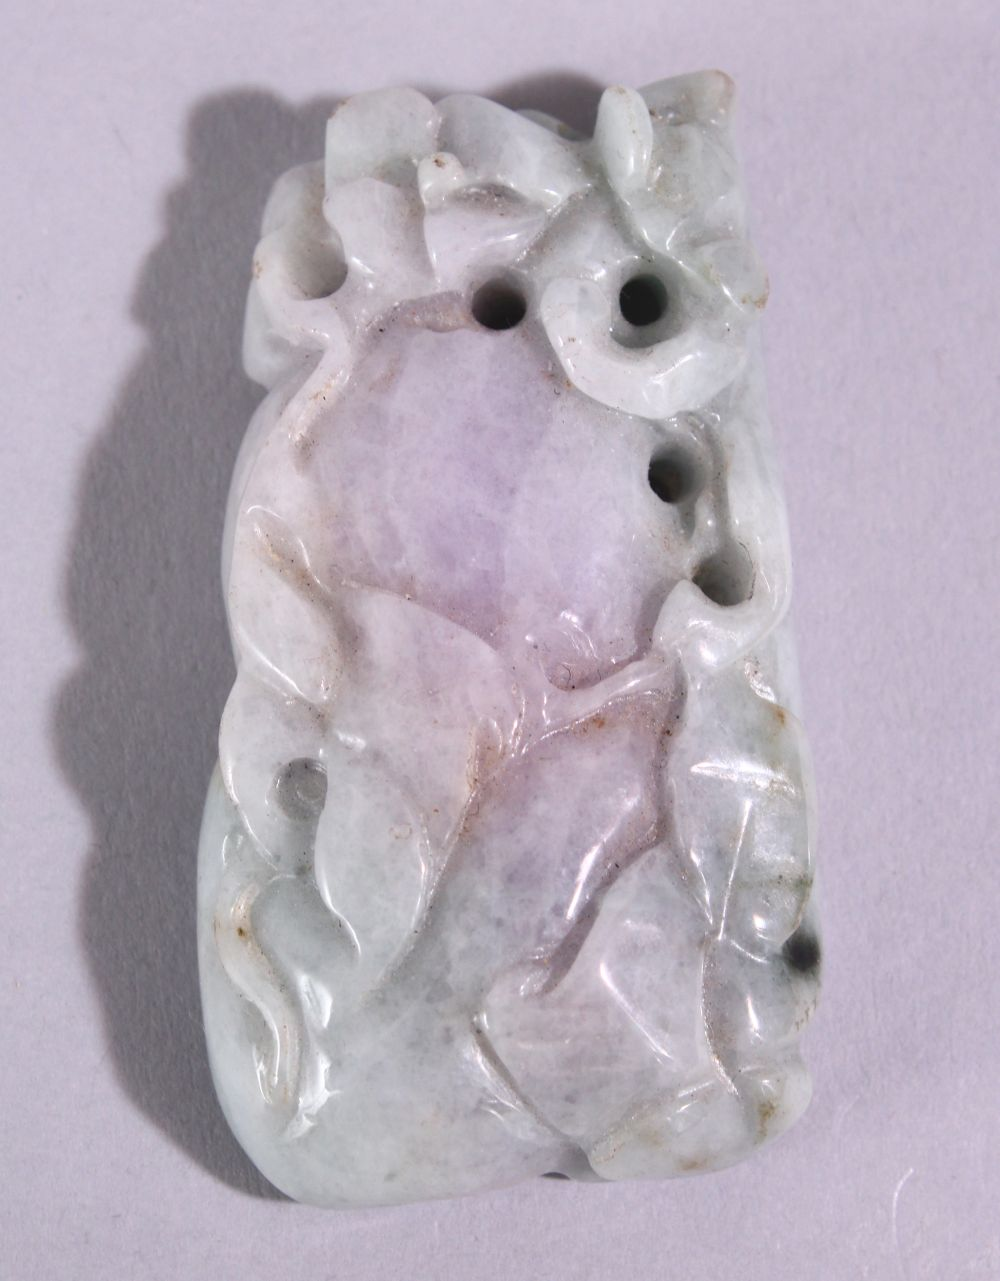 A CHINESE CARVED AND PIERCED JADITE / HARDSTONE AMULET, in the form of a guord and animal, 6cm x